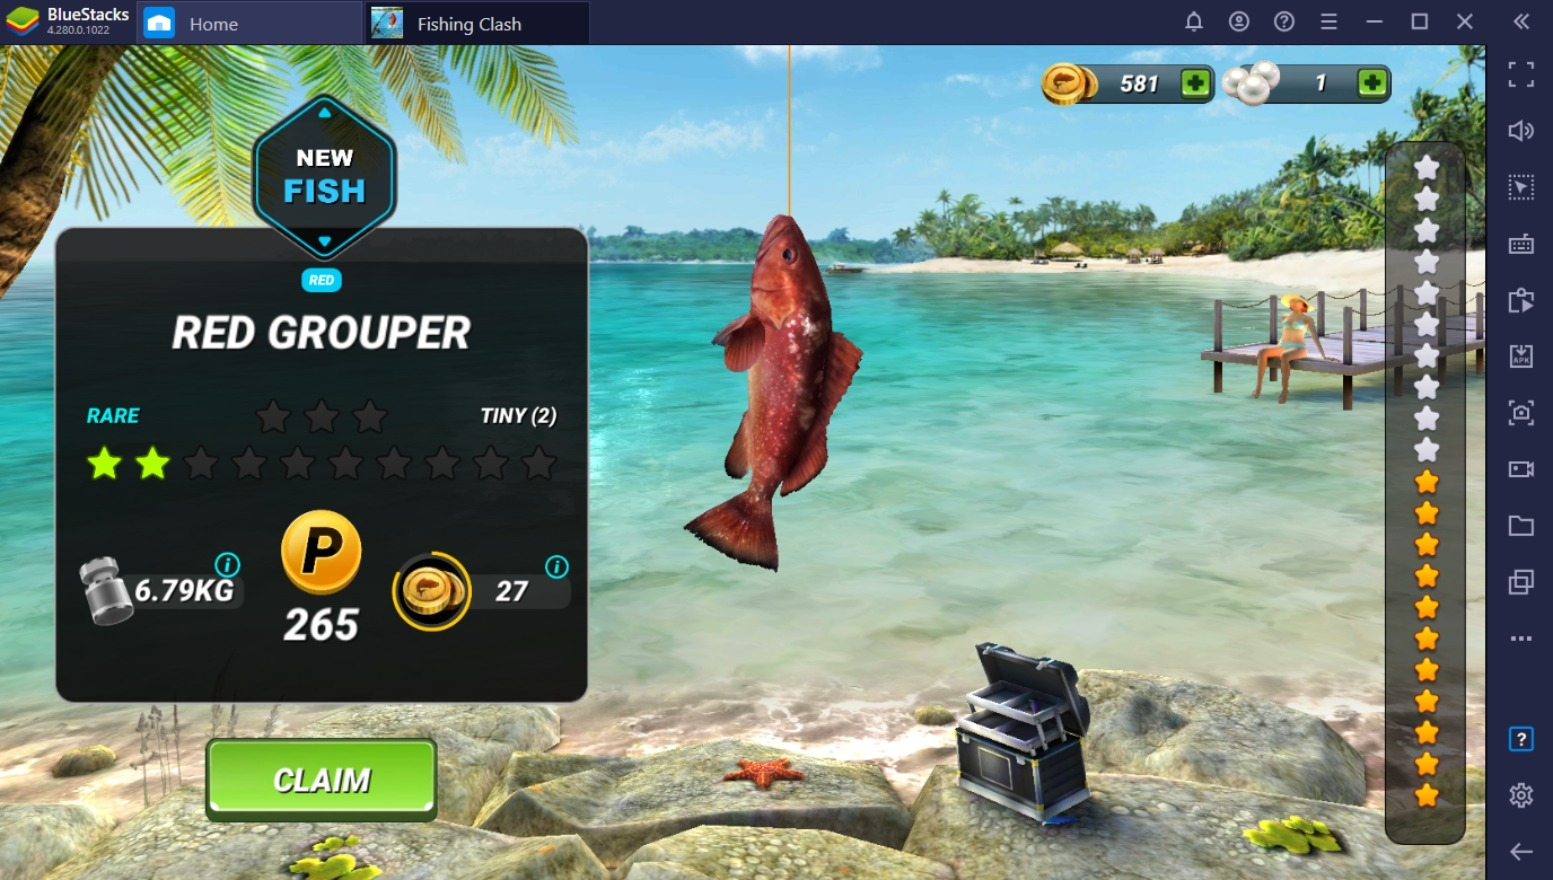 How to Play Fishing Clash on PC with BlueStacks